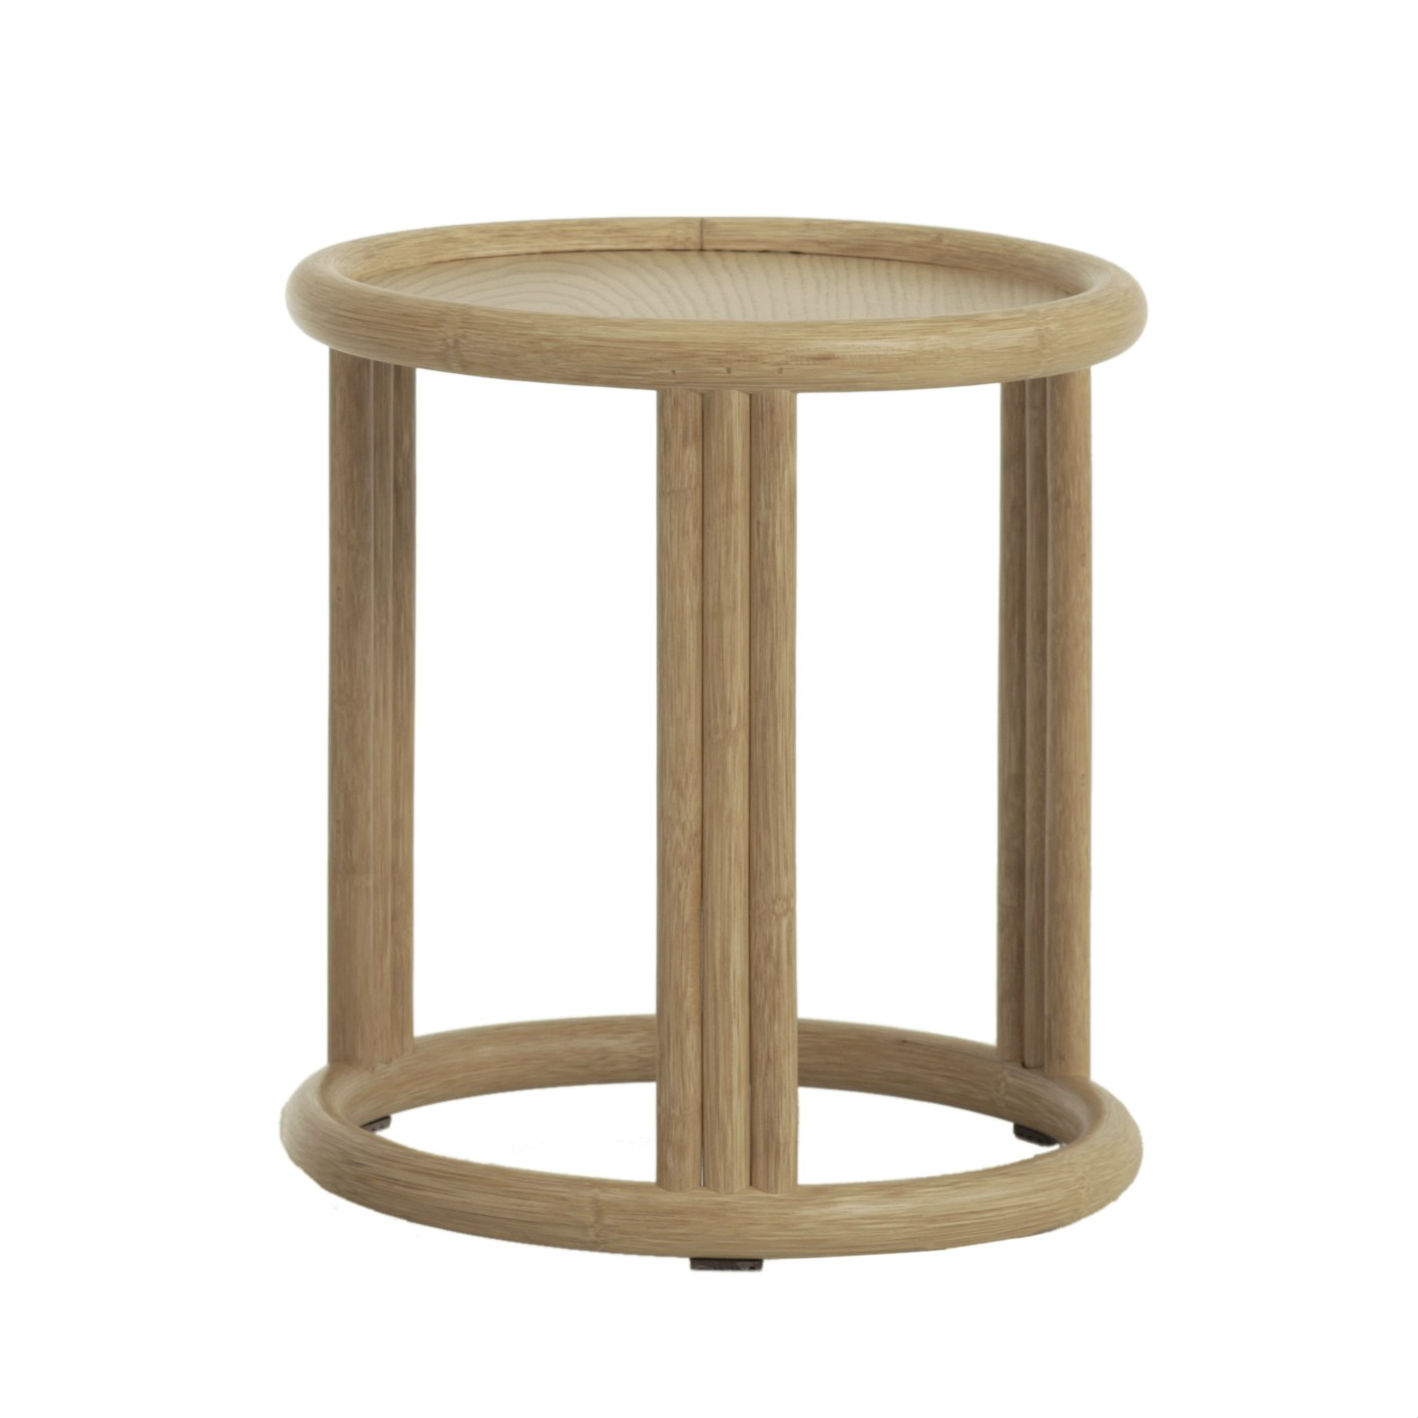 Petite Table Appoint Petite Table D Appoint Petite Table D 39 Appoint Tanah